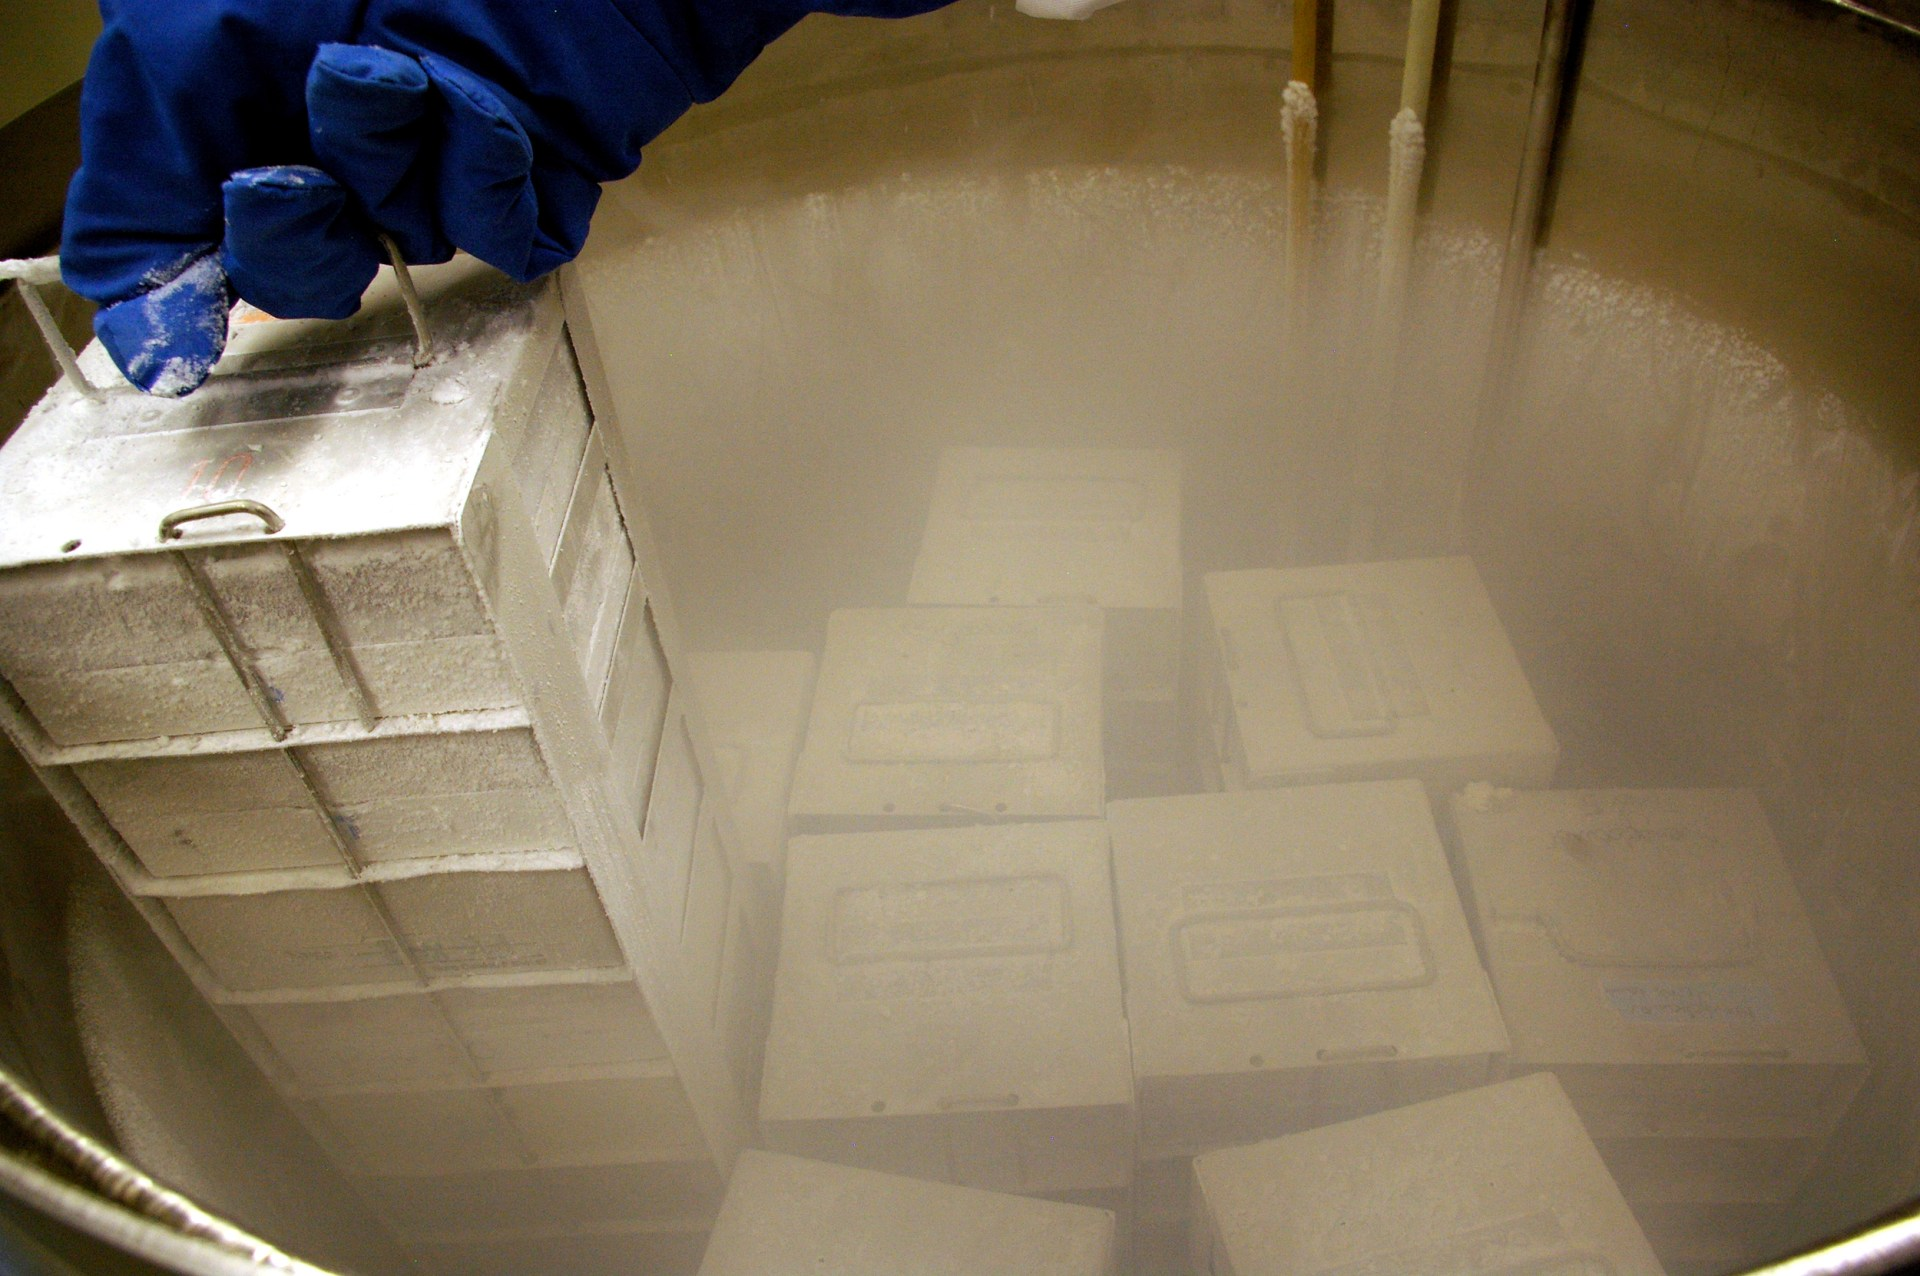 Liquid nitrogen cryopreservation of cells is commonplace